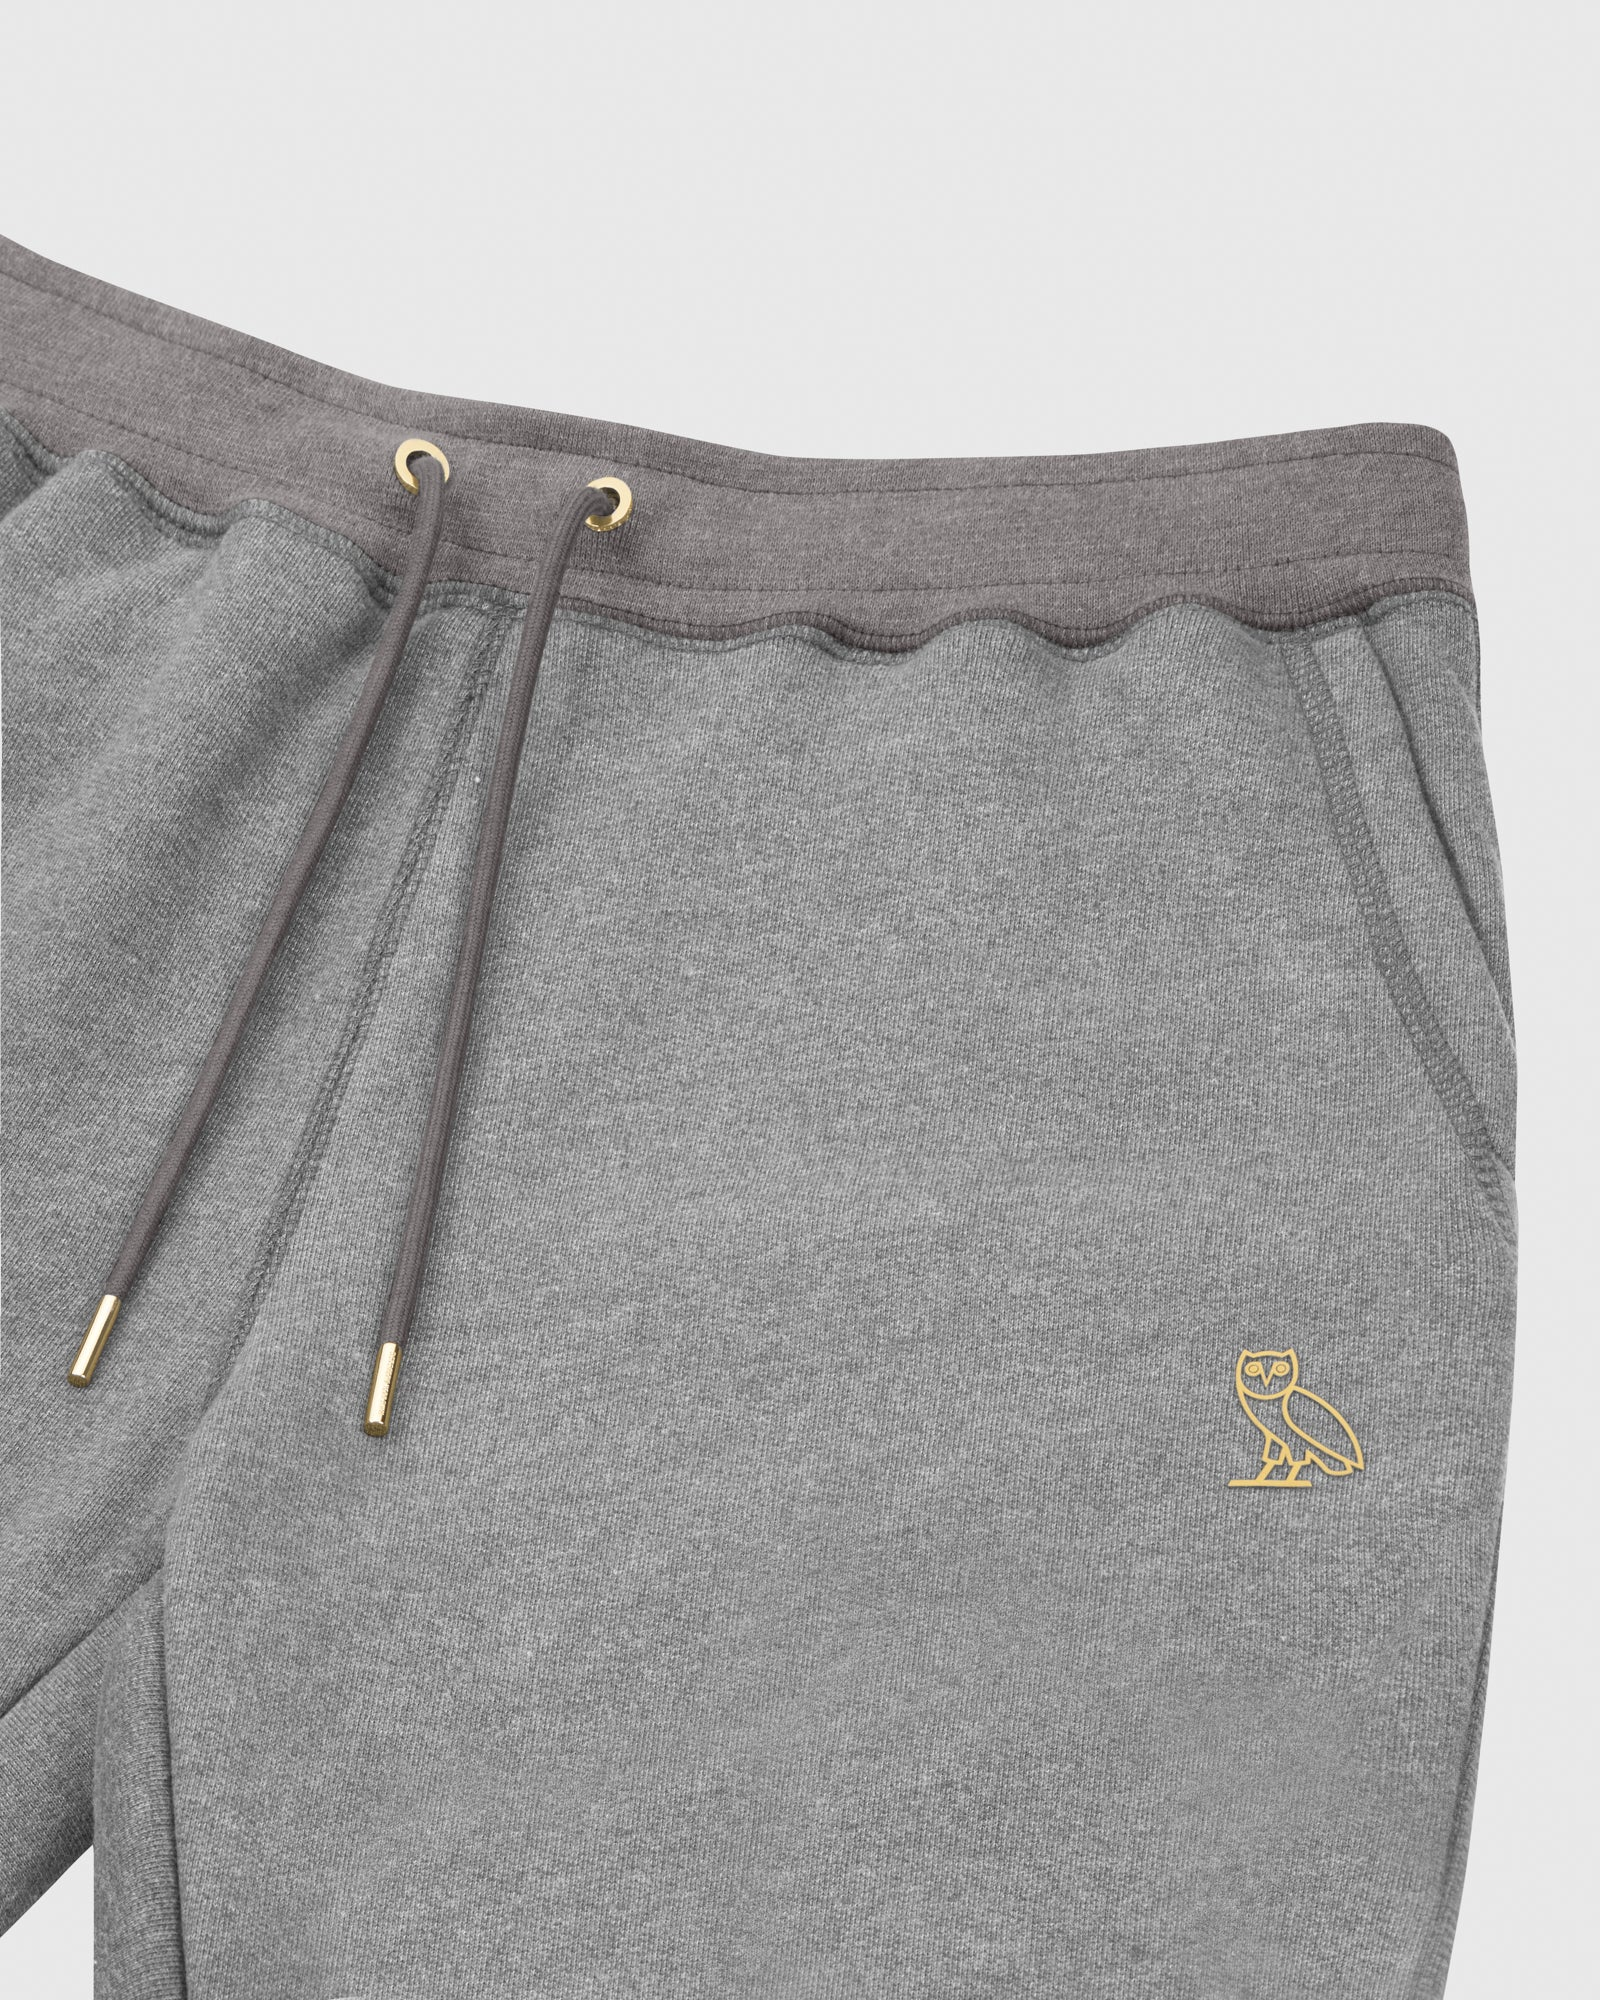 OVO FRENCH TERRY SWEATPANT - HEATHER ASH GREY IMAGE #3